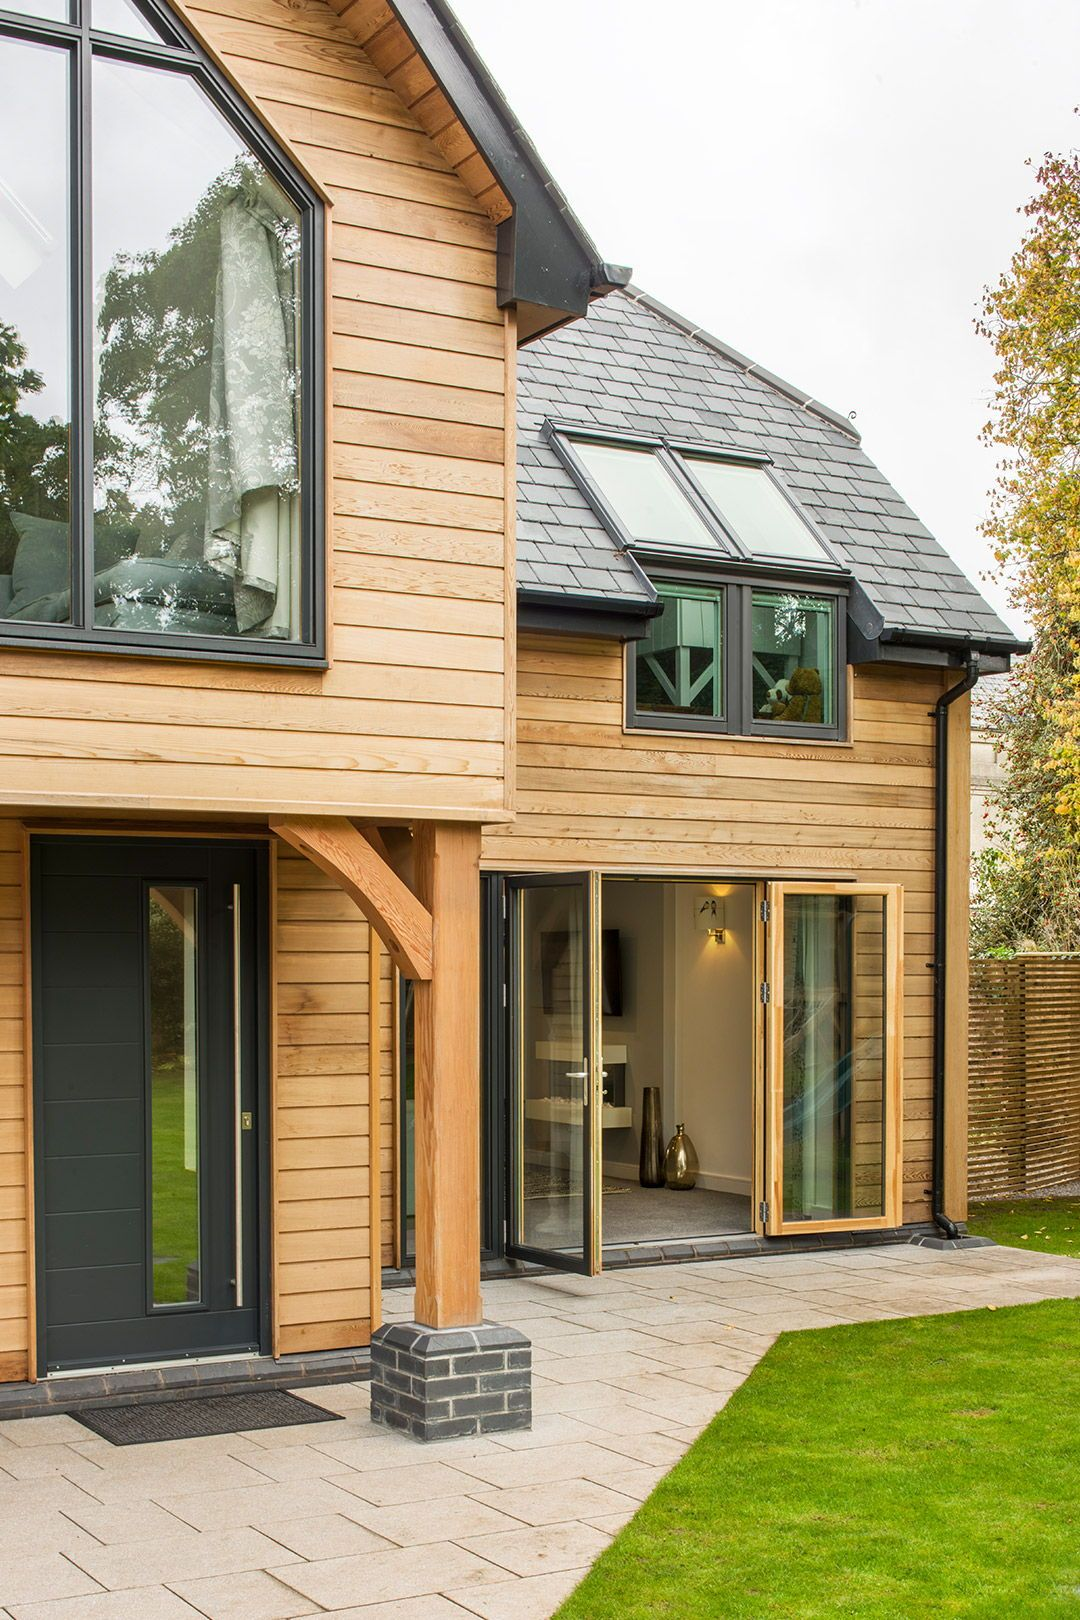 Self Build / Front Exterior House. Timber frame house with ...